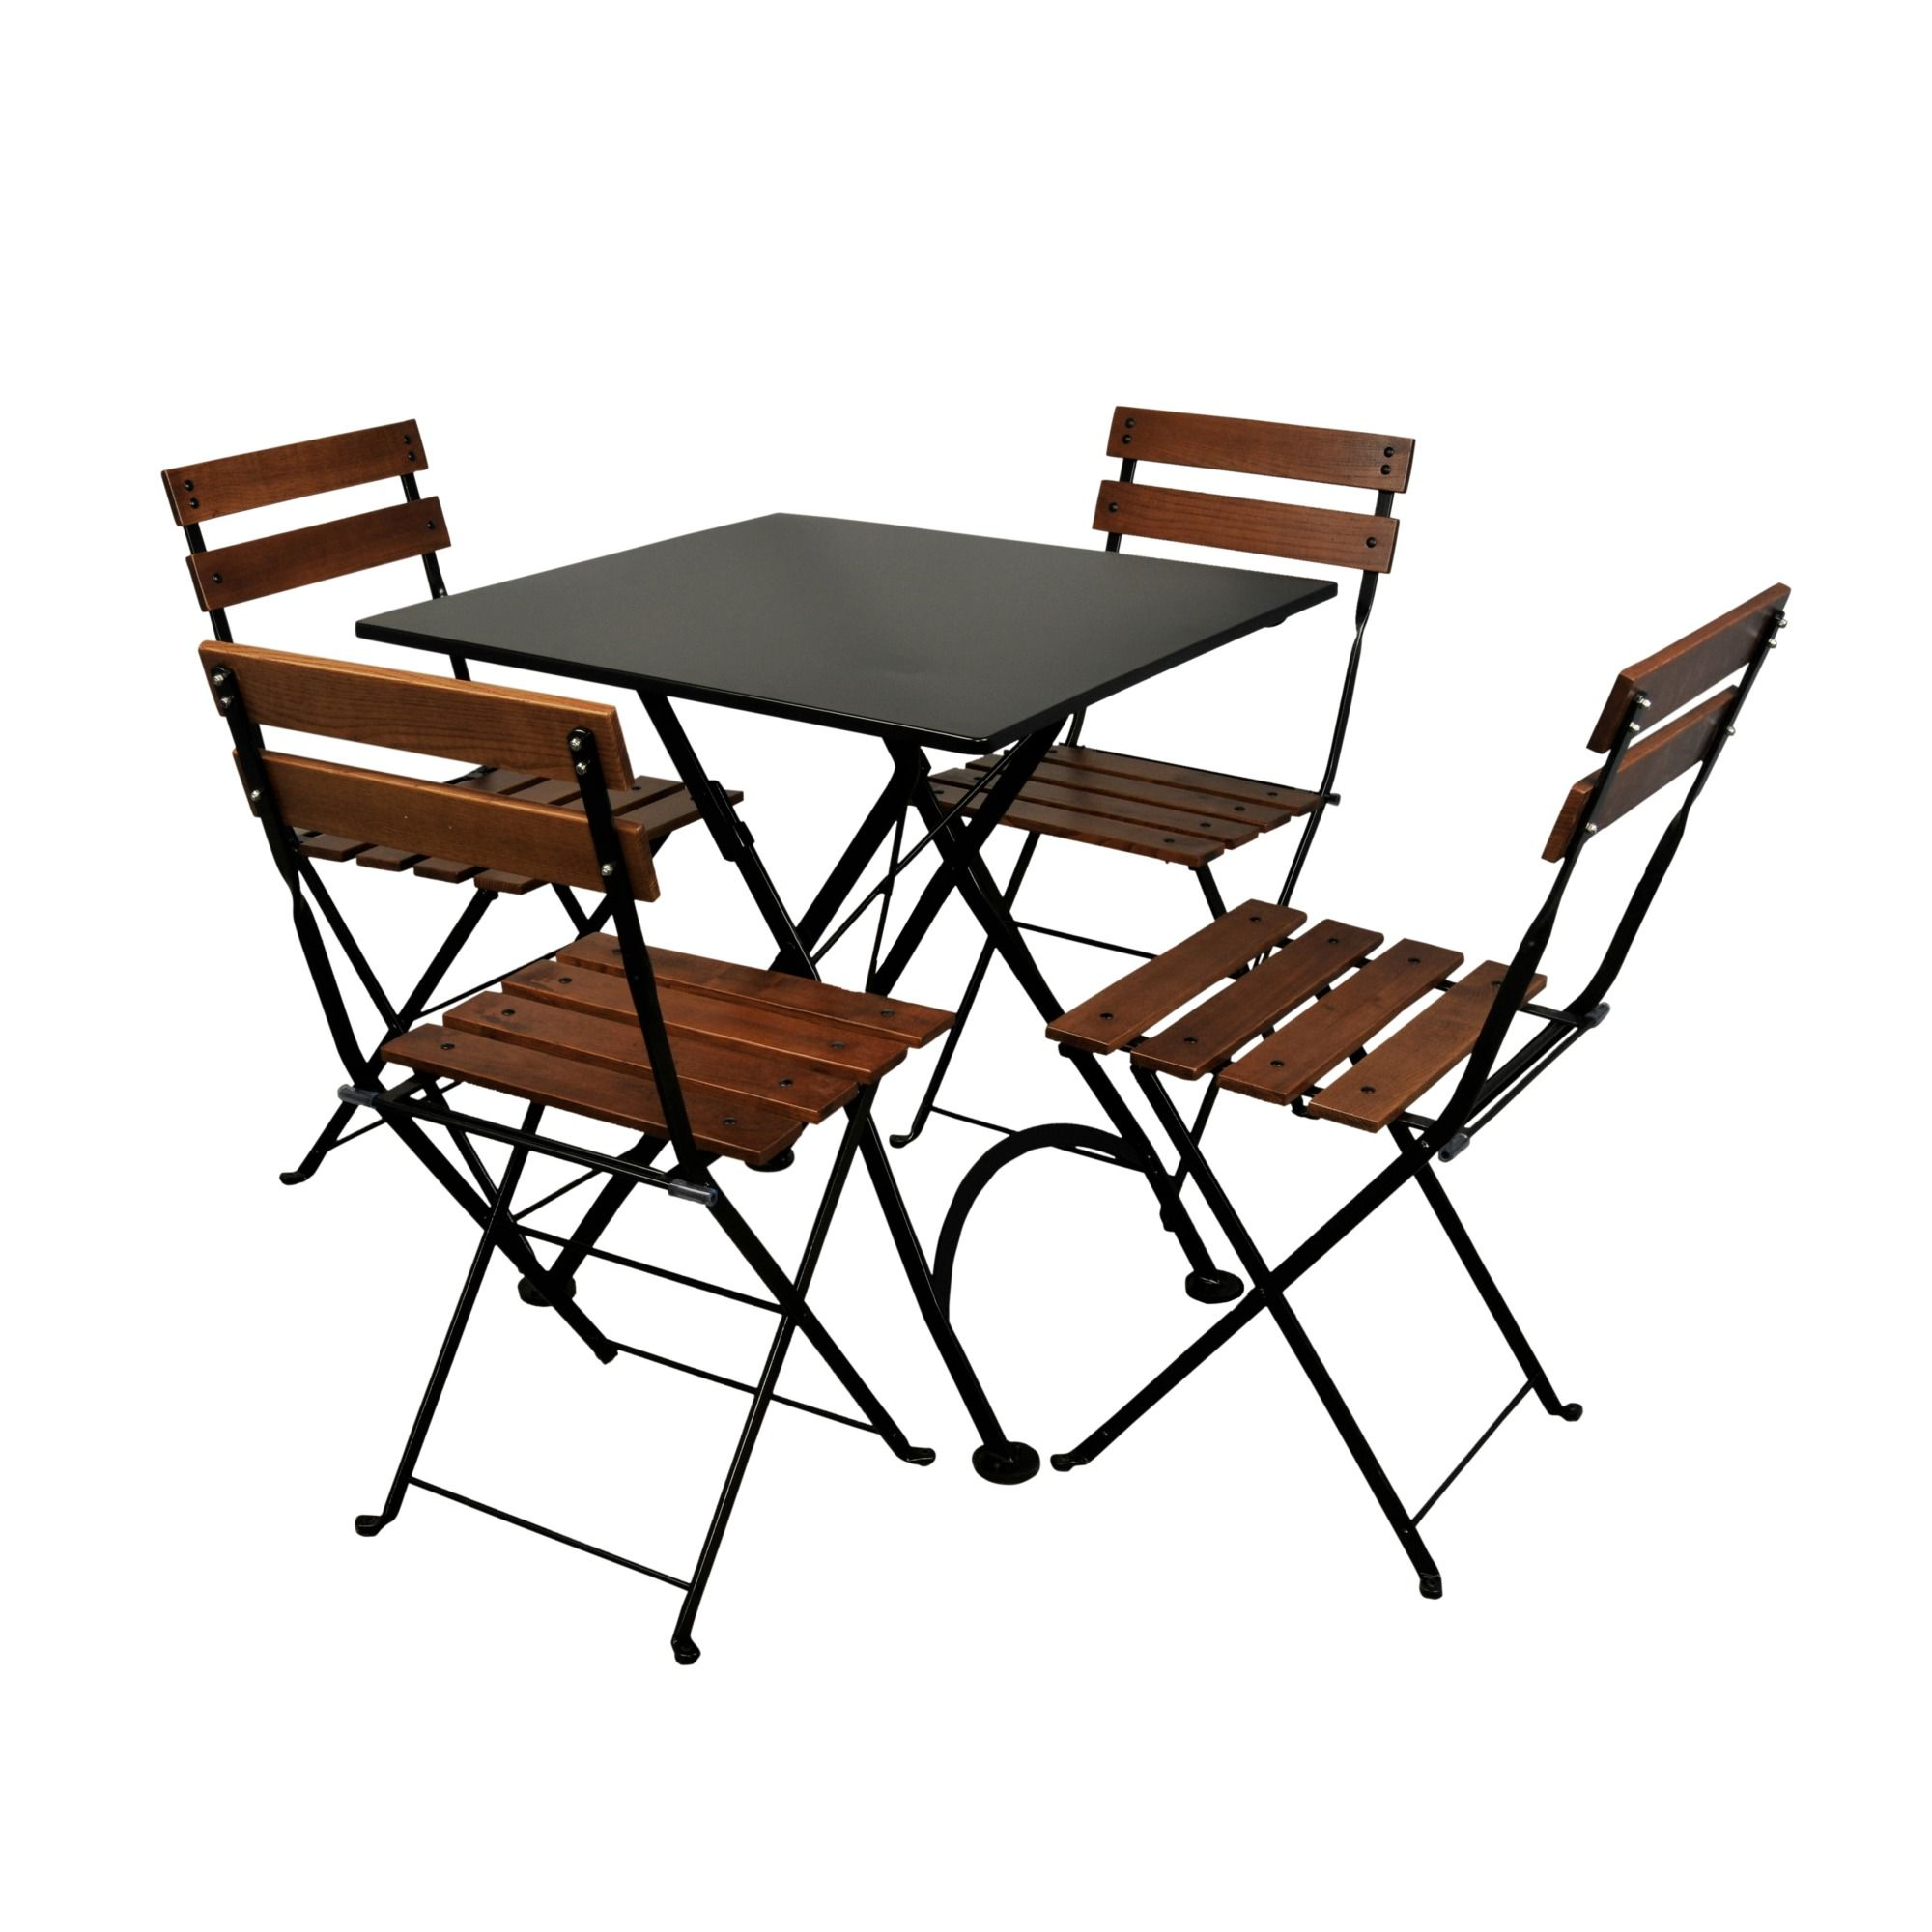 28x28 European Folding Steel Metal Bistro Table $392 80